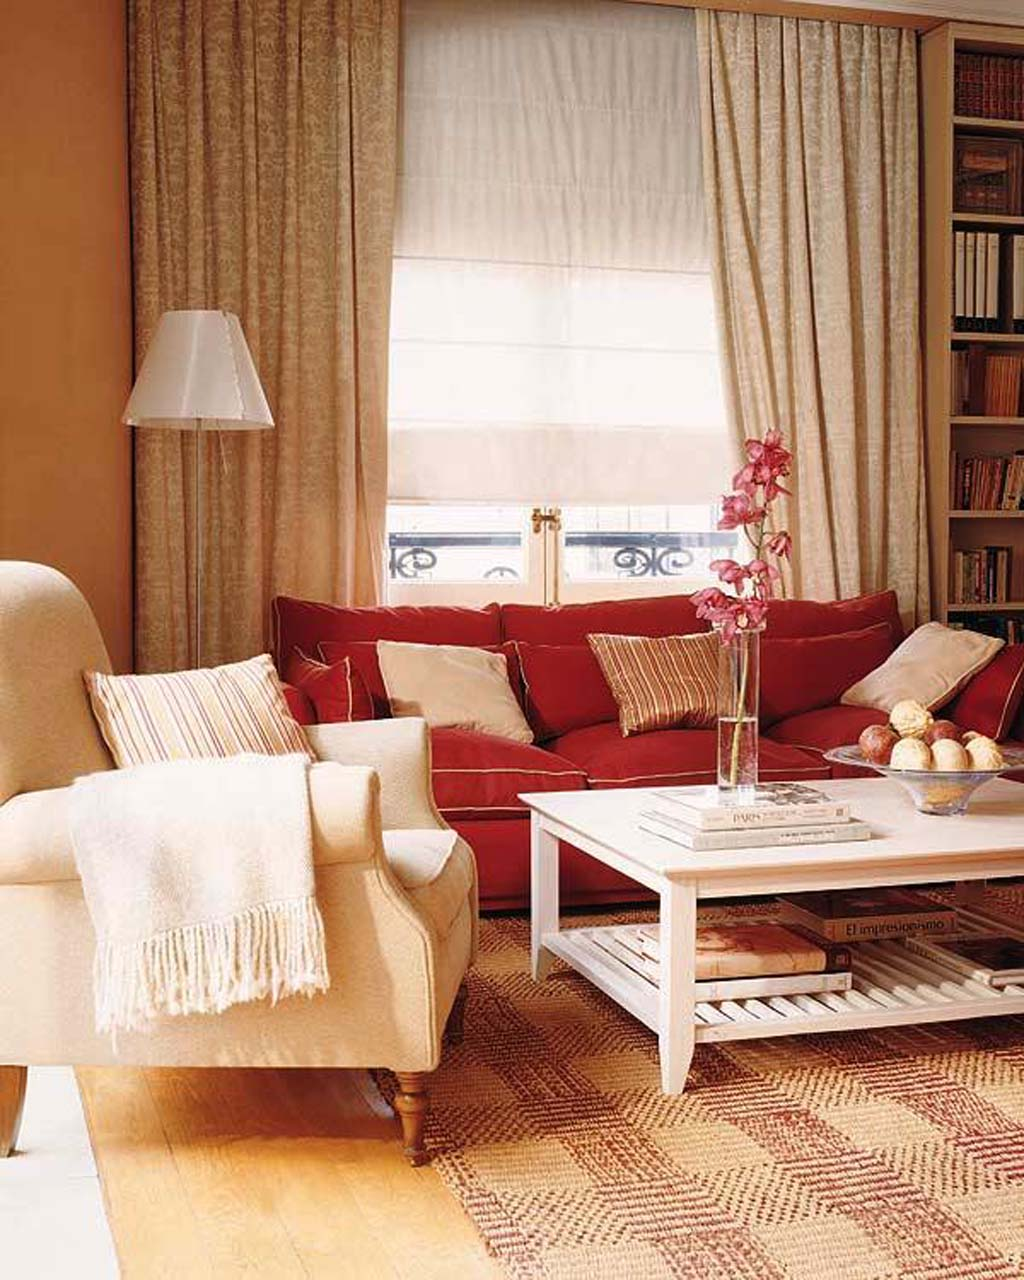 Small Living Room Decorating Ideas With Furniture Arrangement Pictures 05